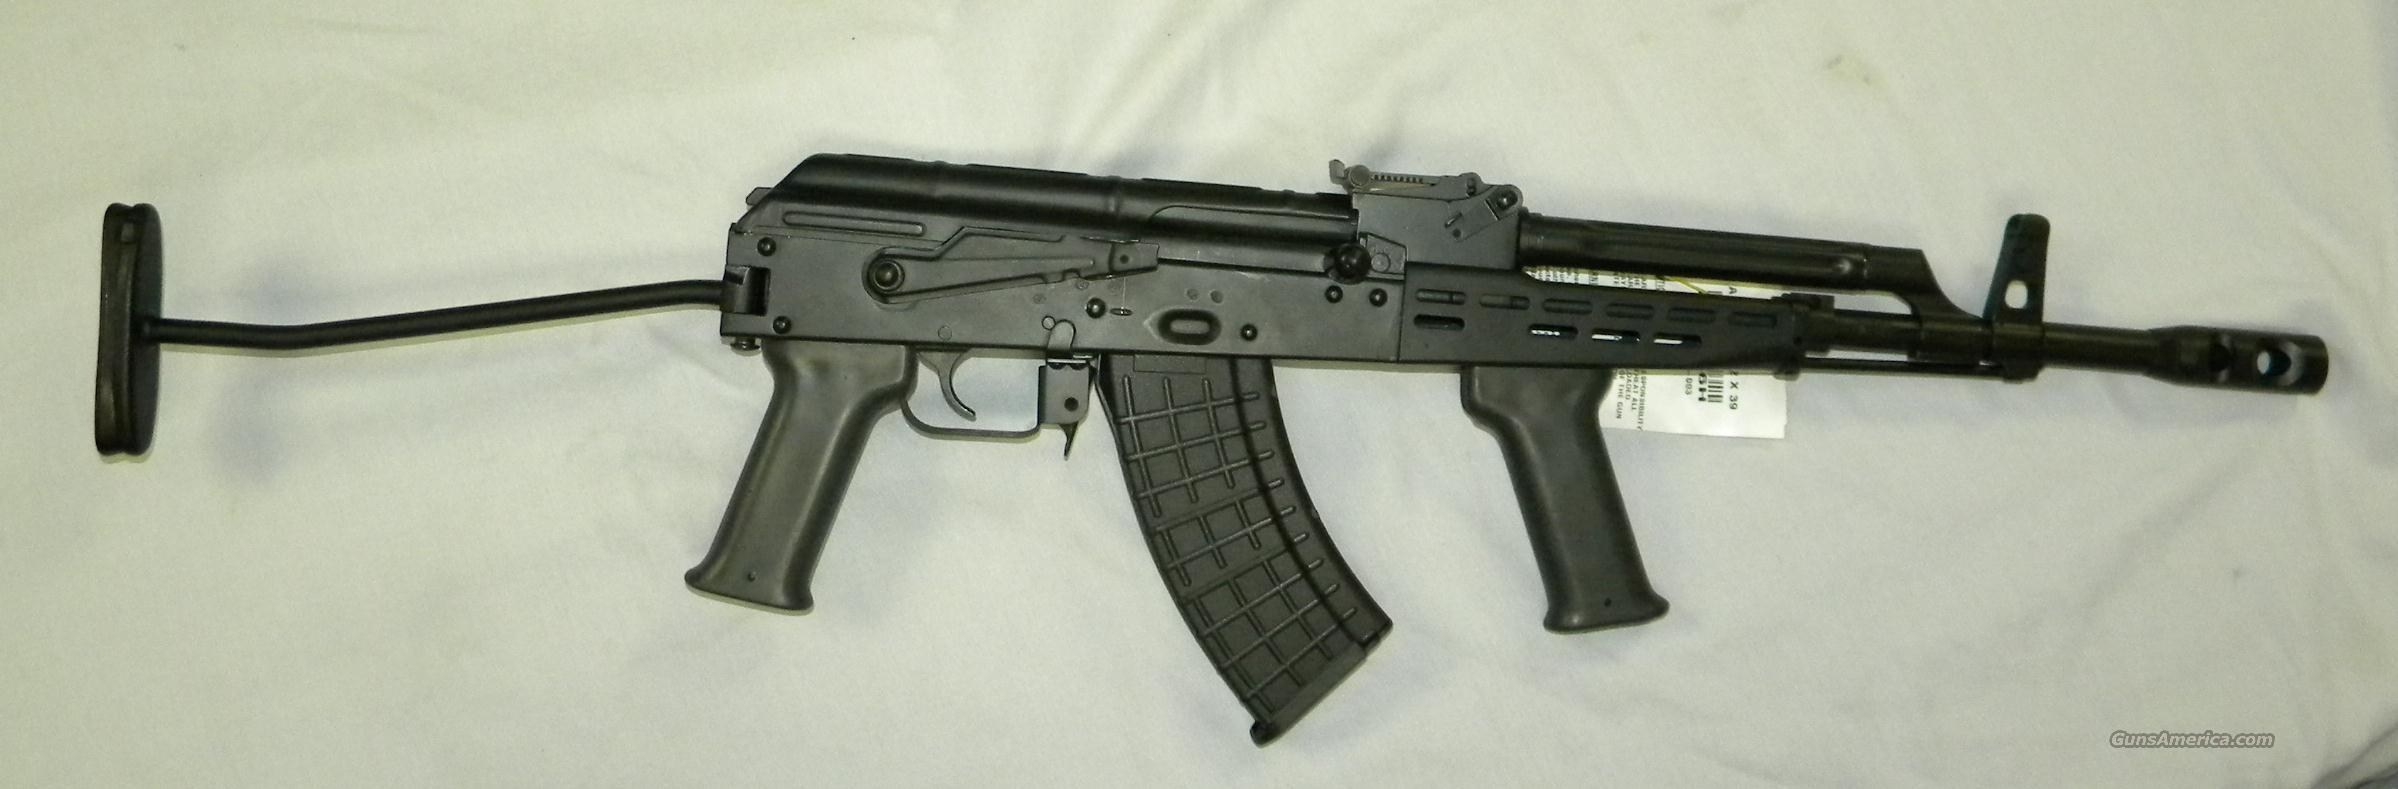 FEG SA2000 Hungarian AK 7.62x39 ( AMD-65)  Guns > Rifles > AK-47 Rifles (and copies) > Folding Stock